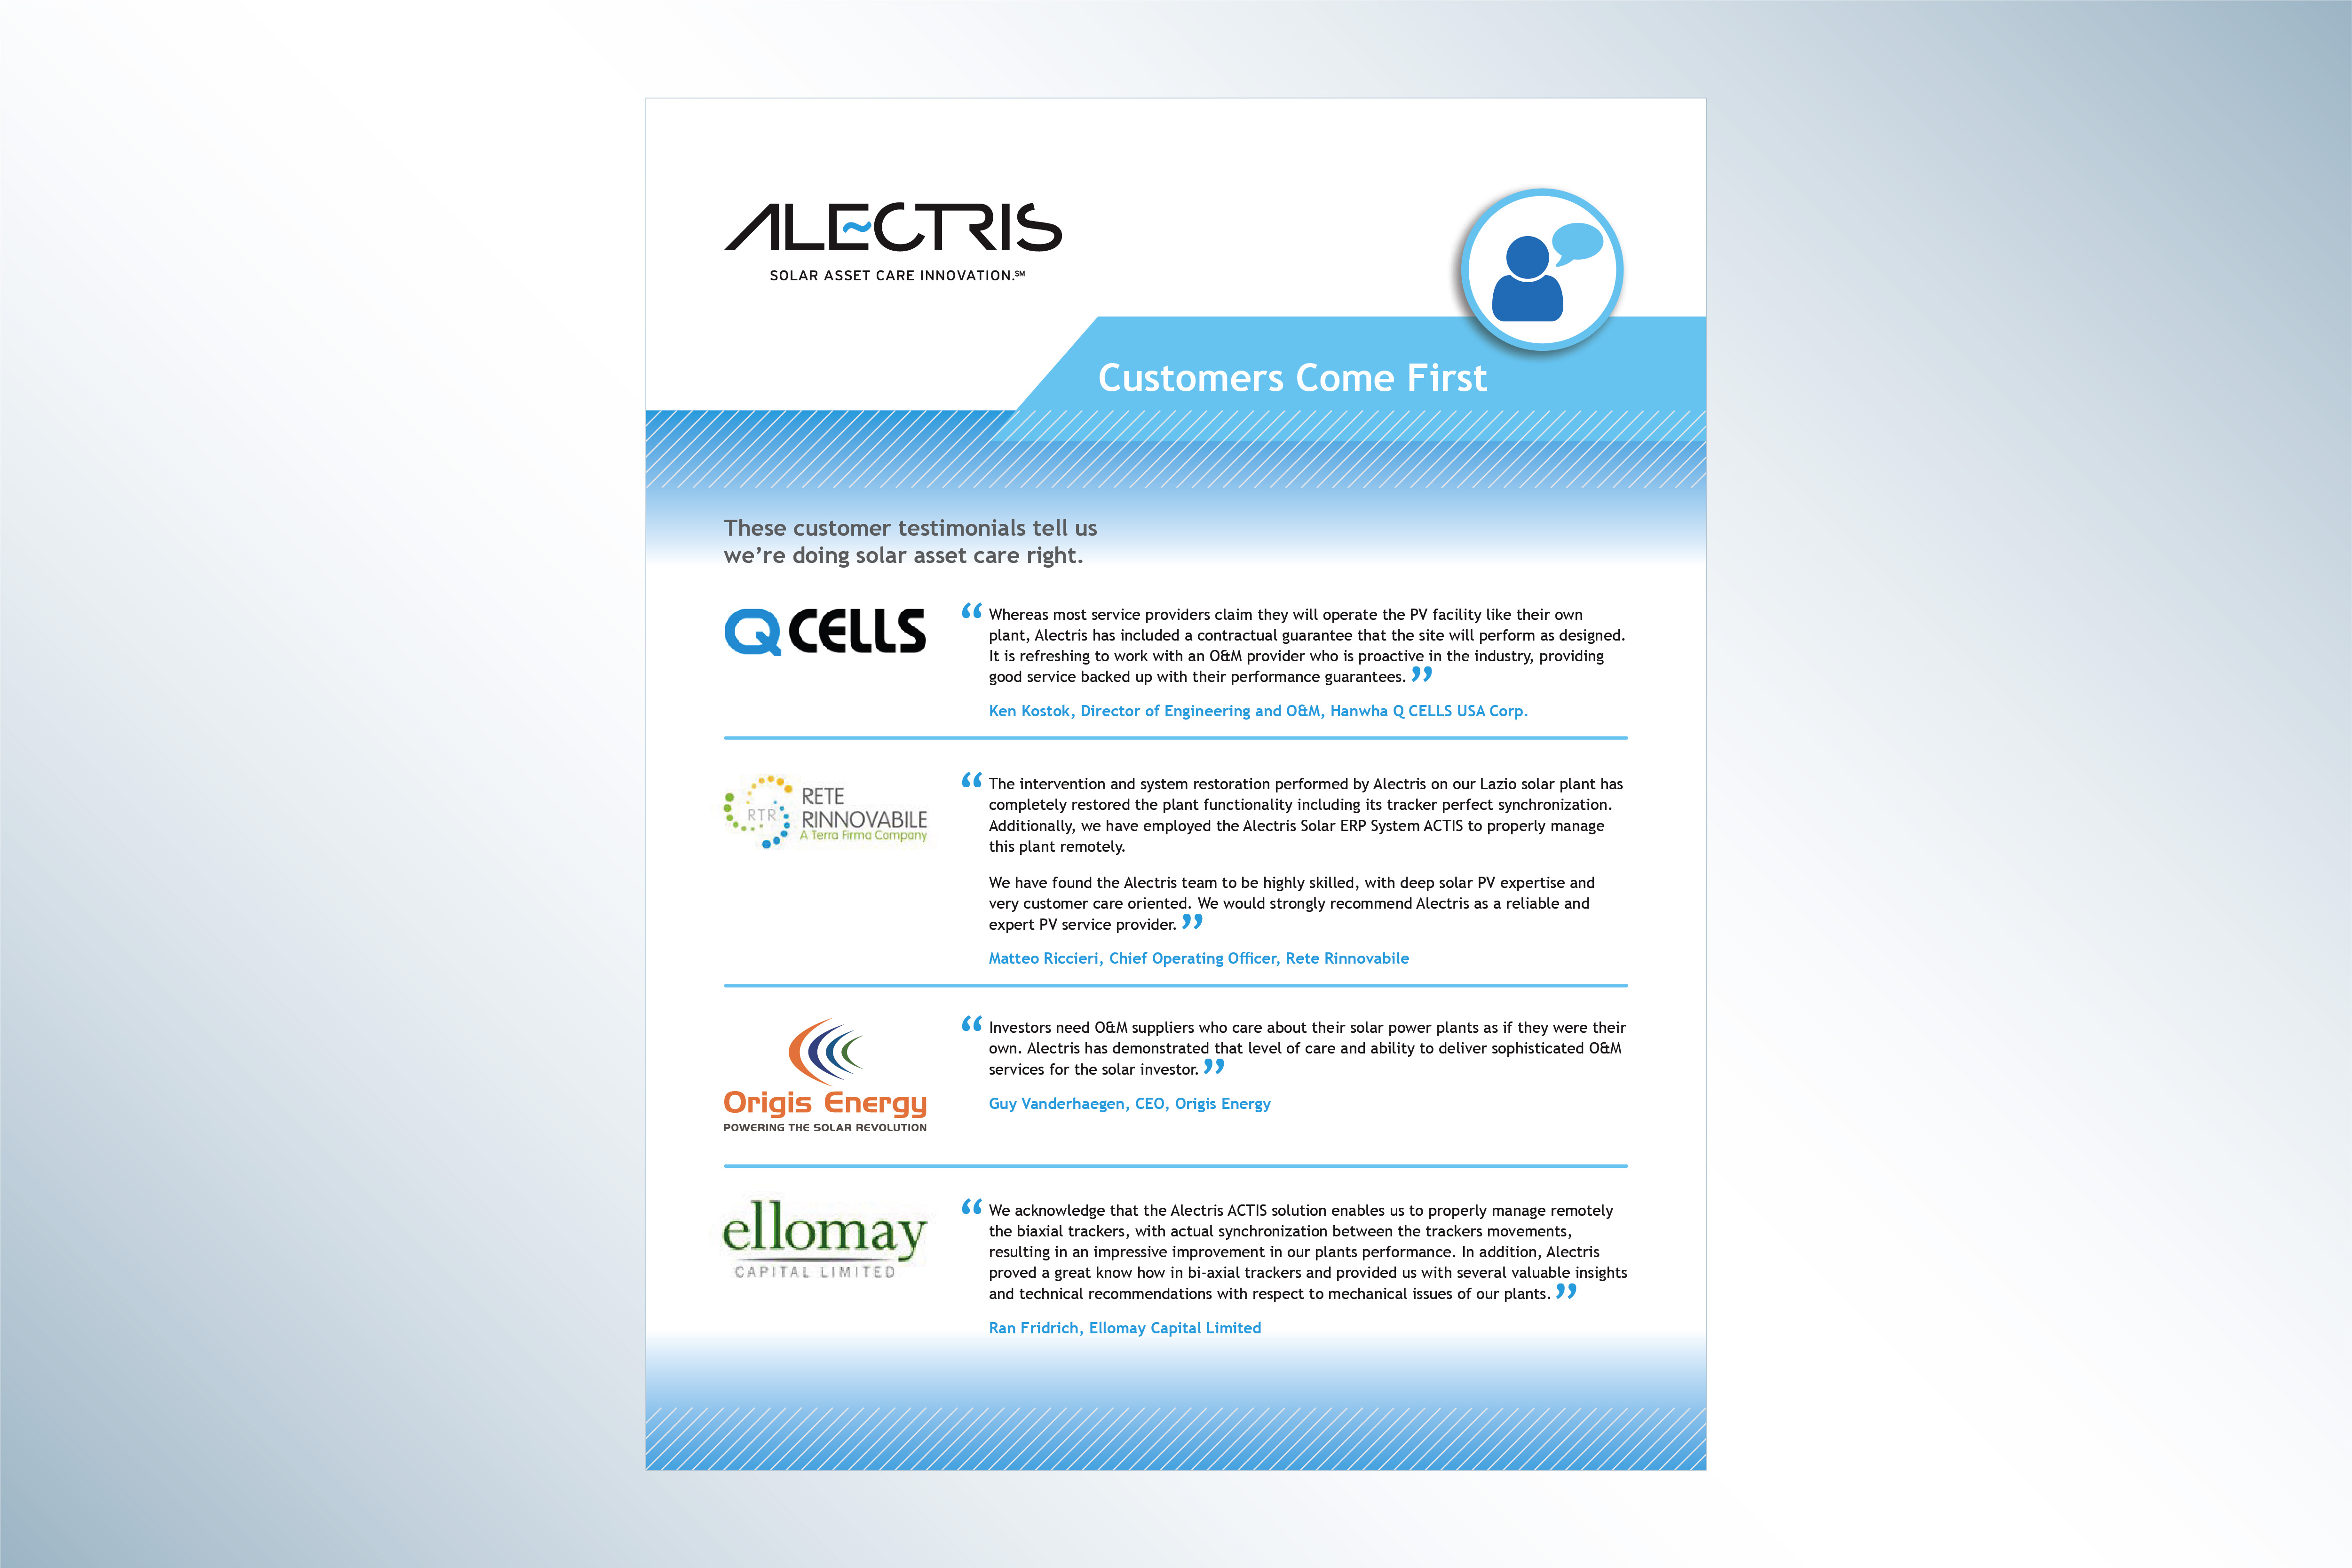 Actis Collateral 04 image